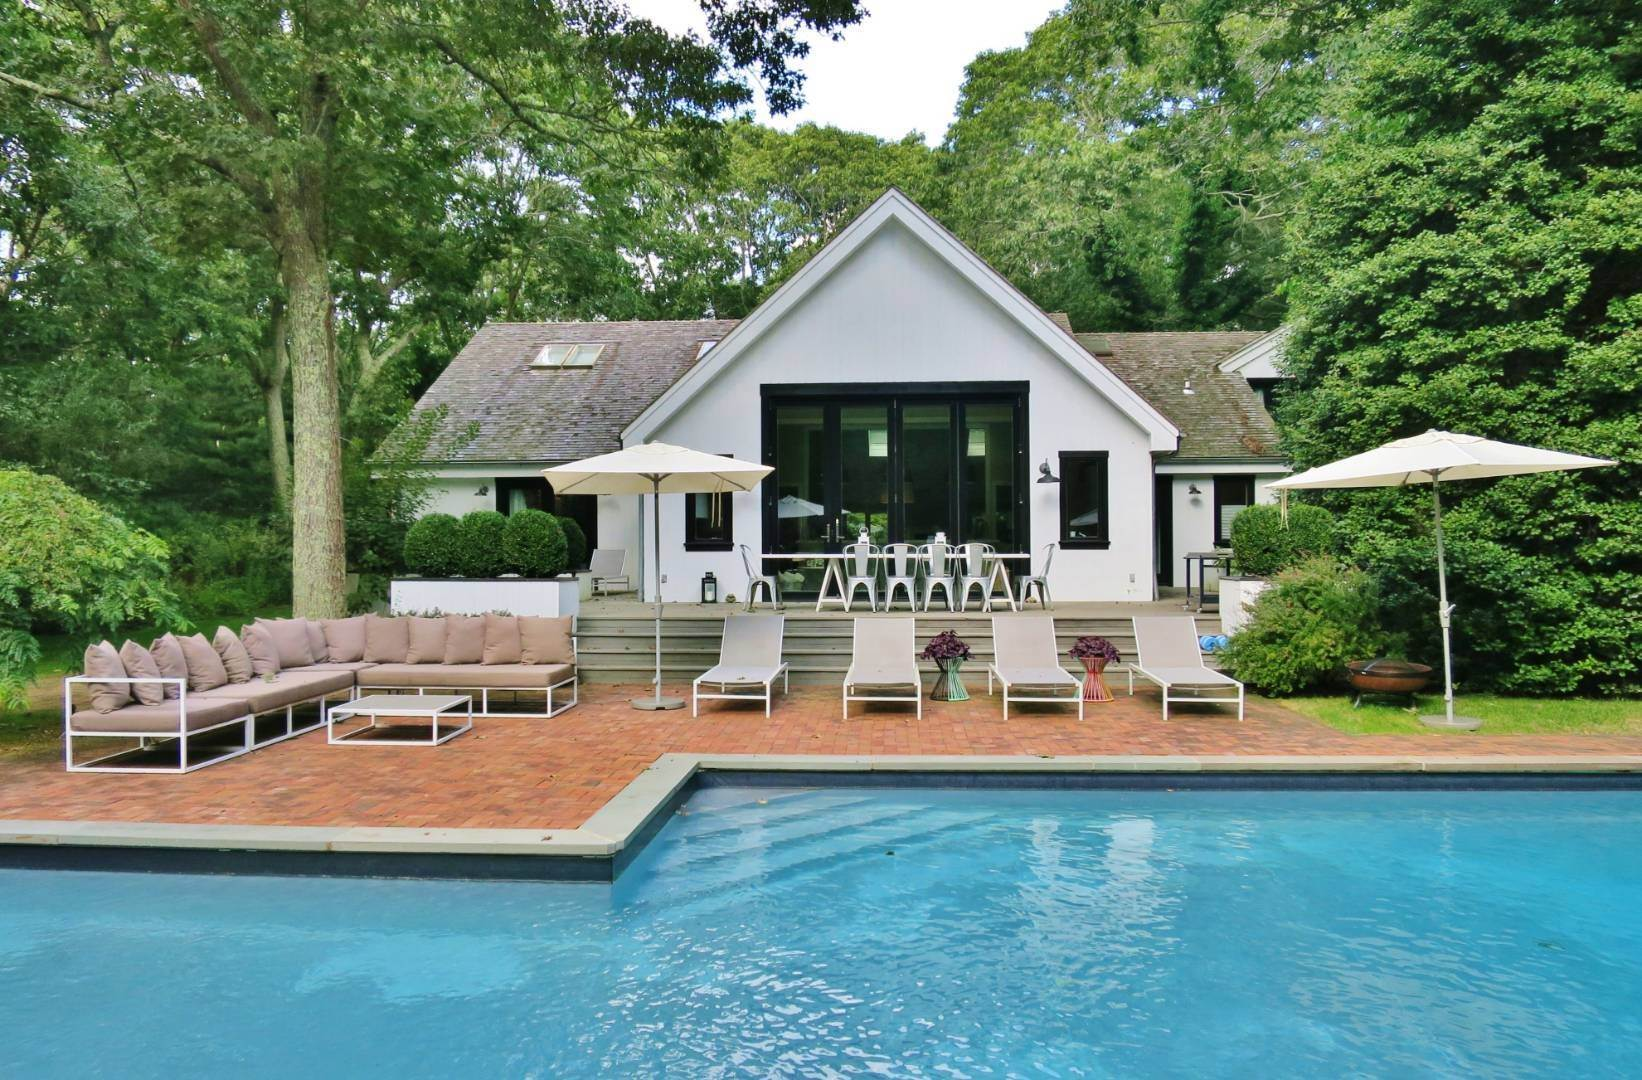 Single Family Home at Elegant Summer Living East Hampton, NY 11937